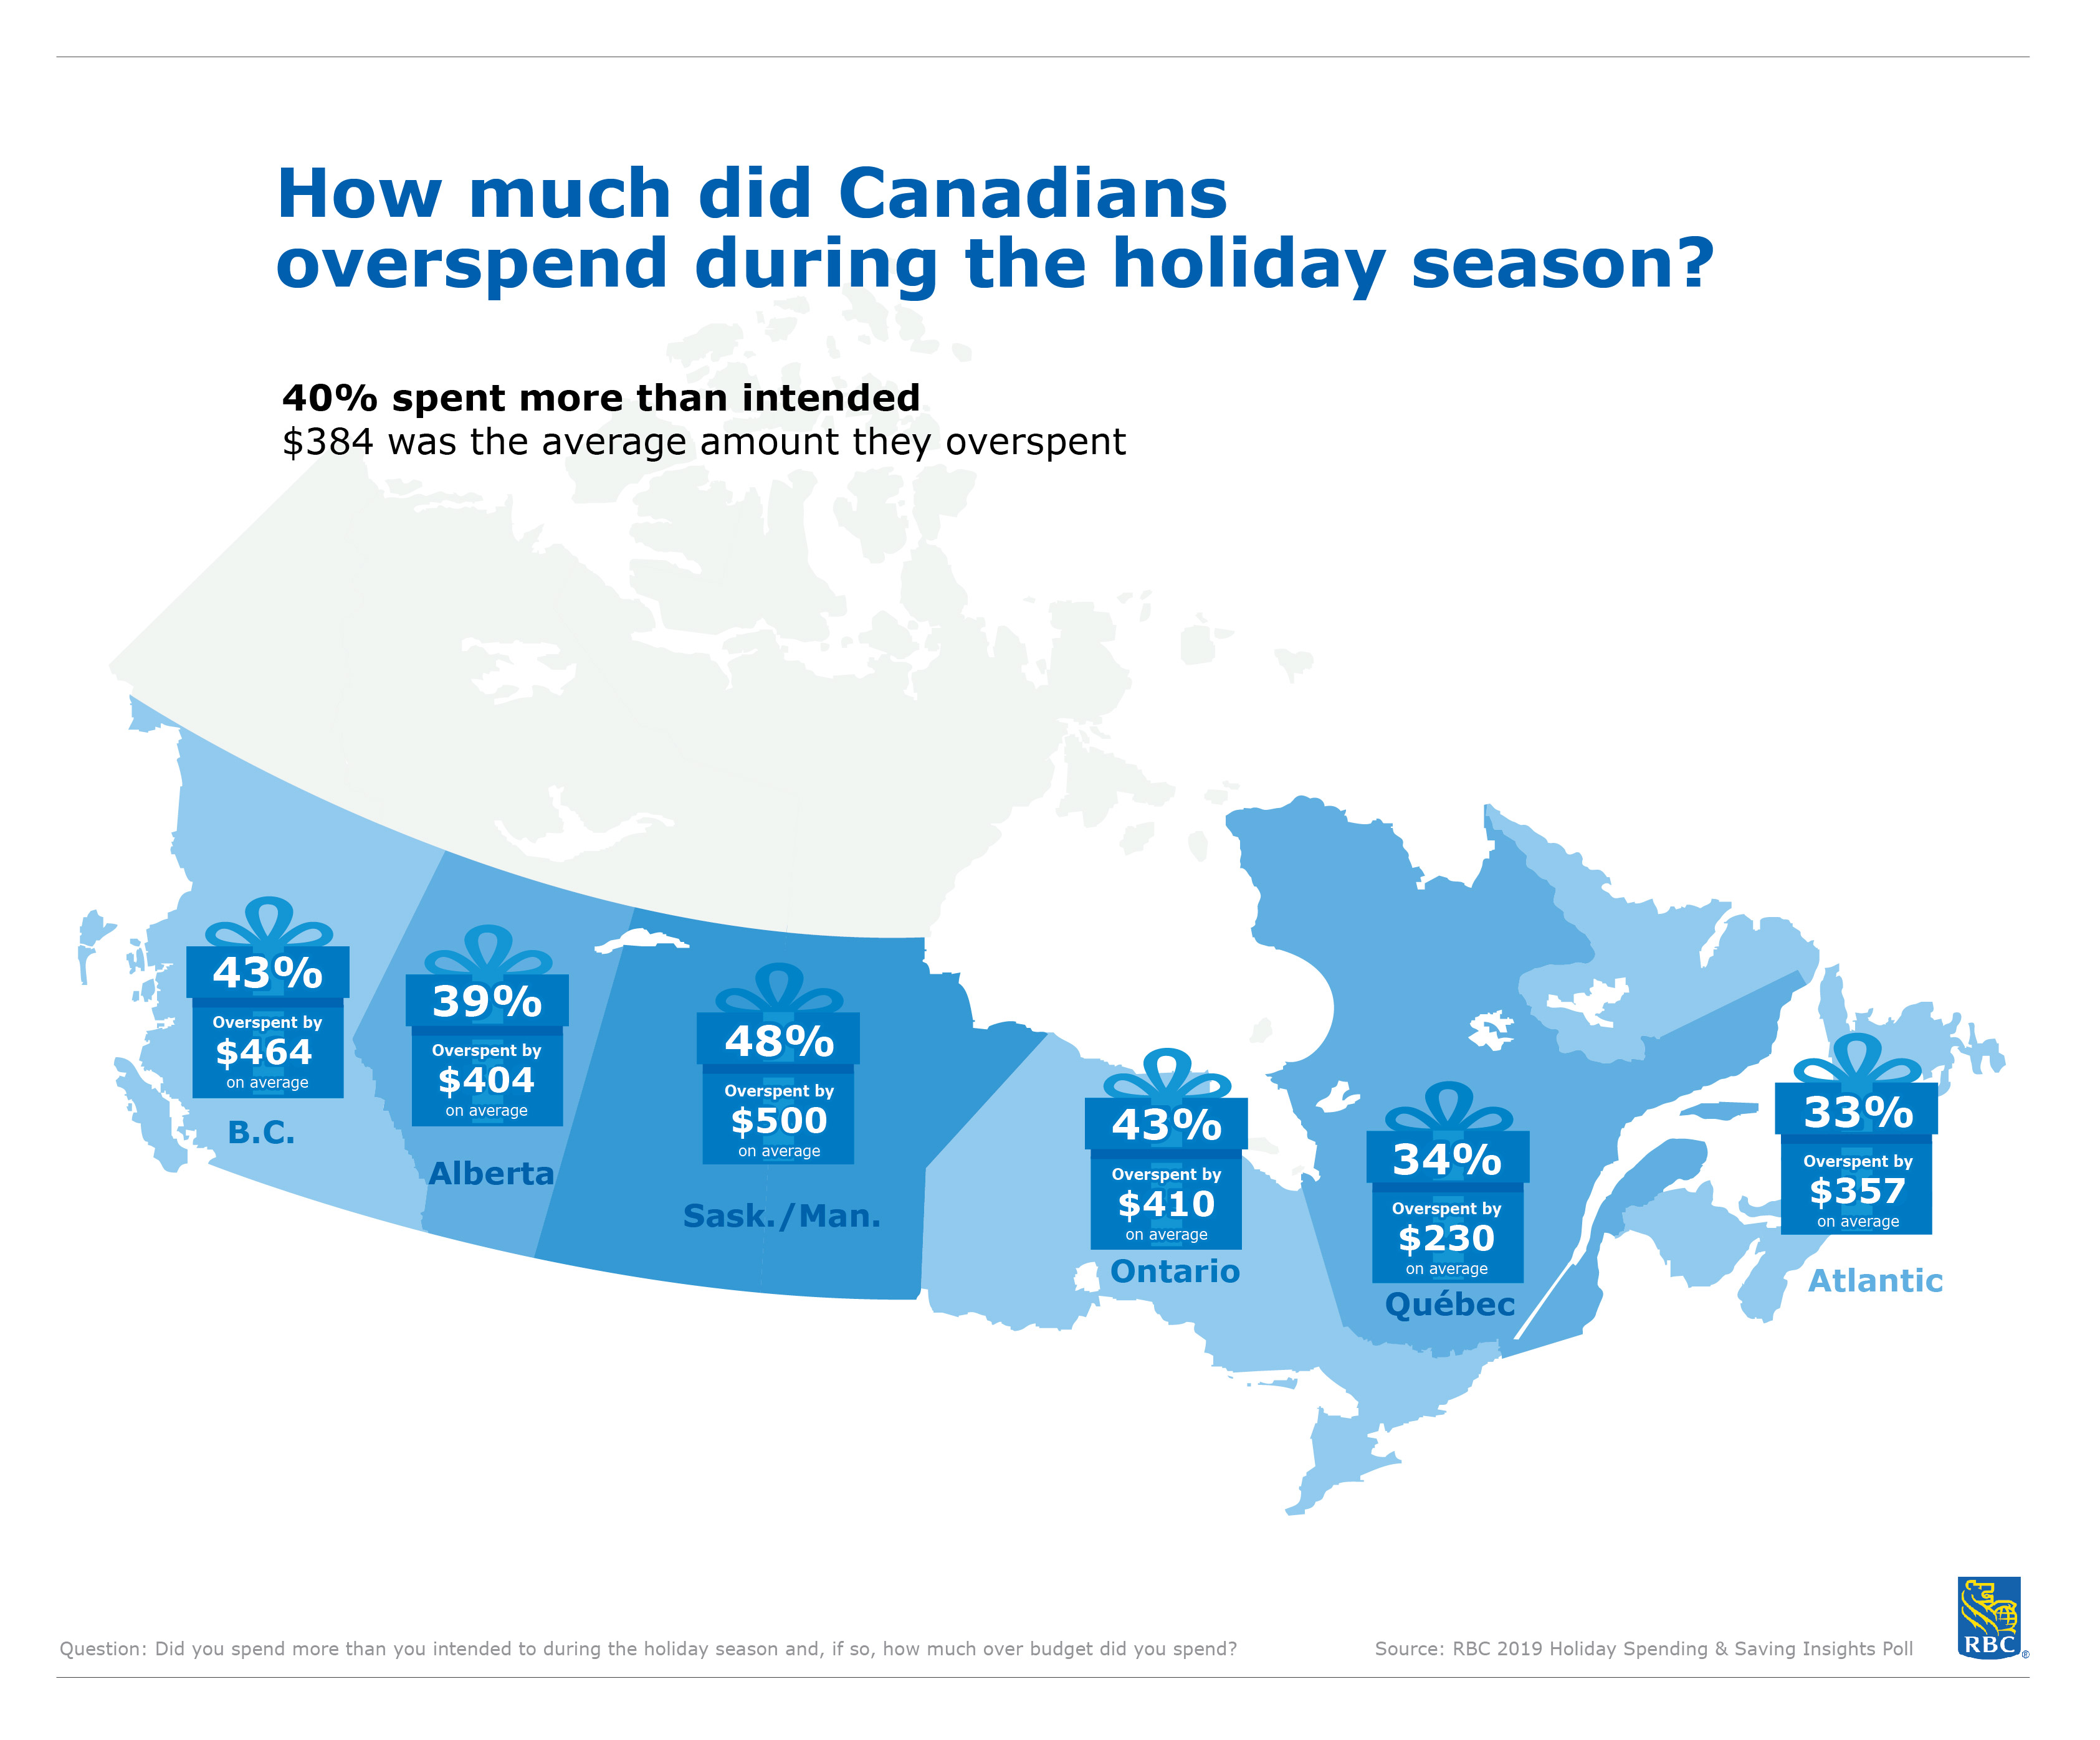 Debt takes a holiday: Canadian overspending drops this holiday season, RBC poll finds